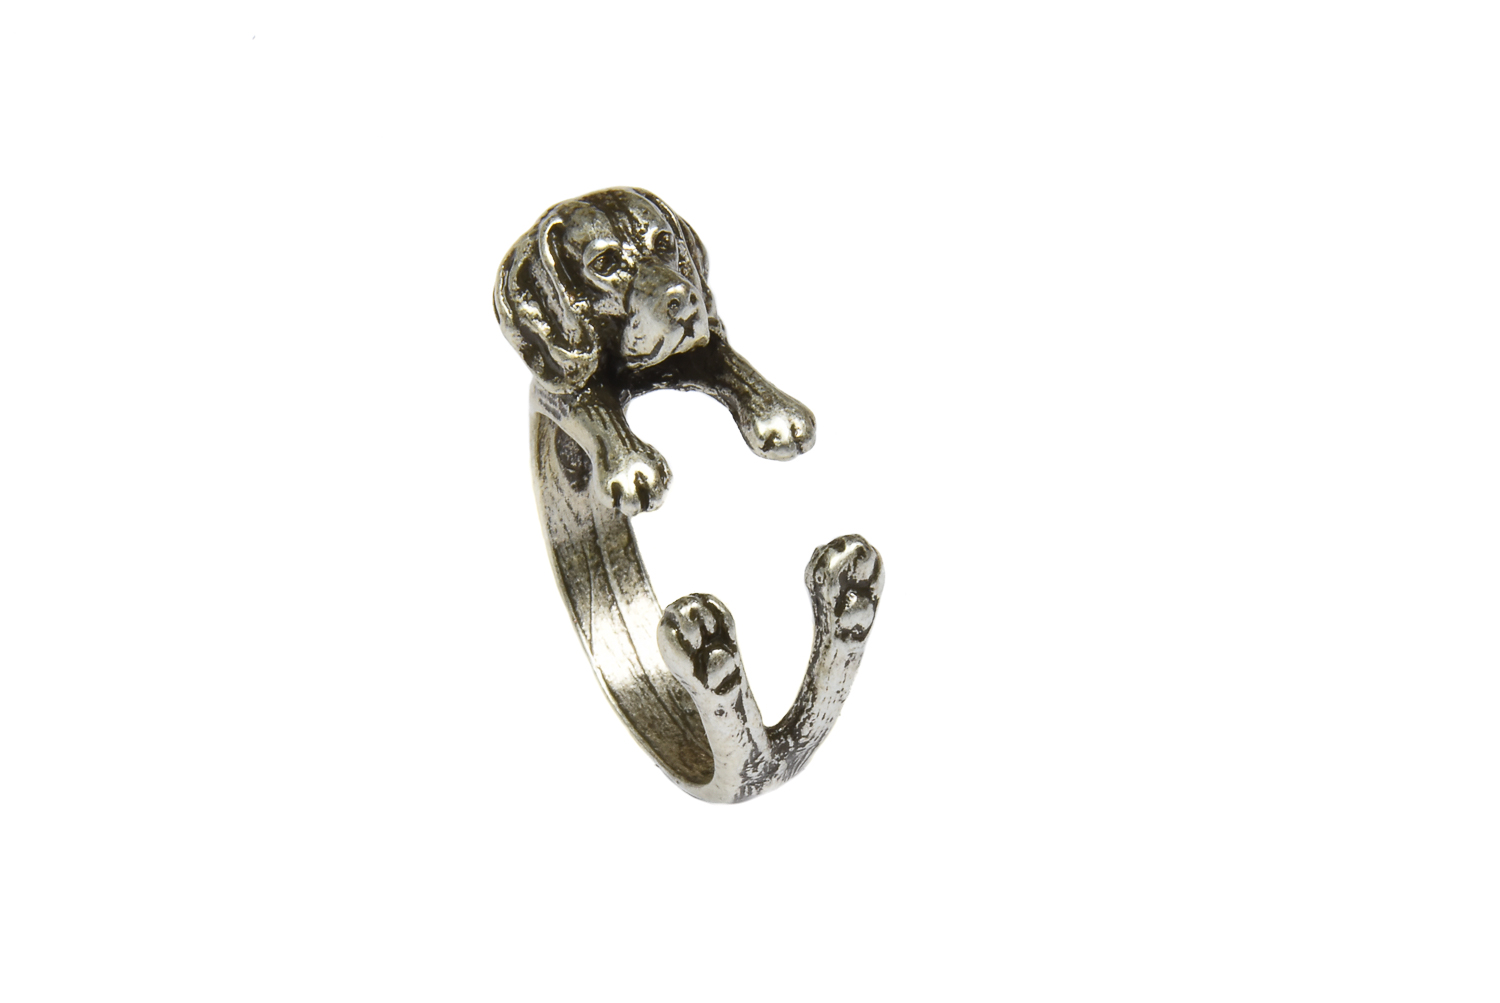 Labrador Dog Ring